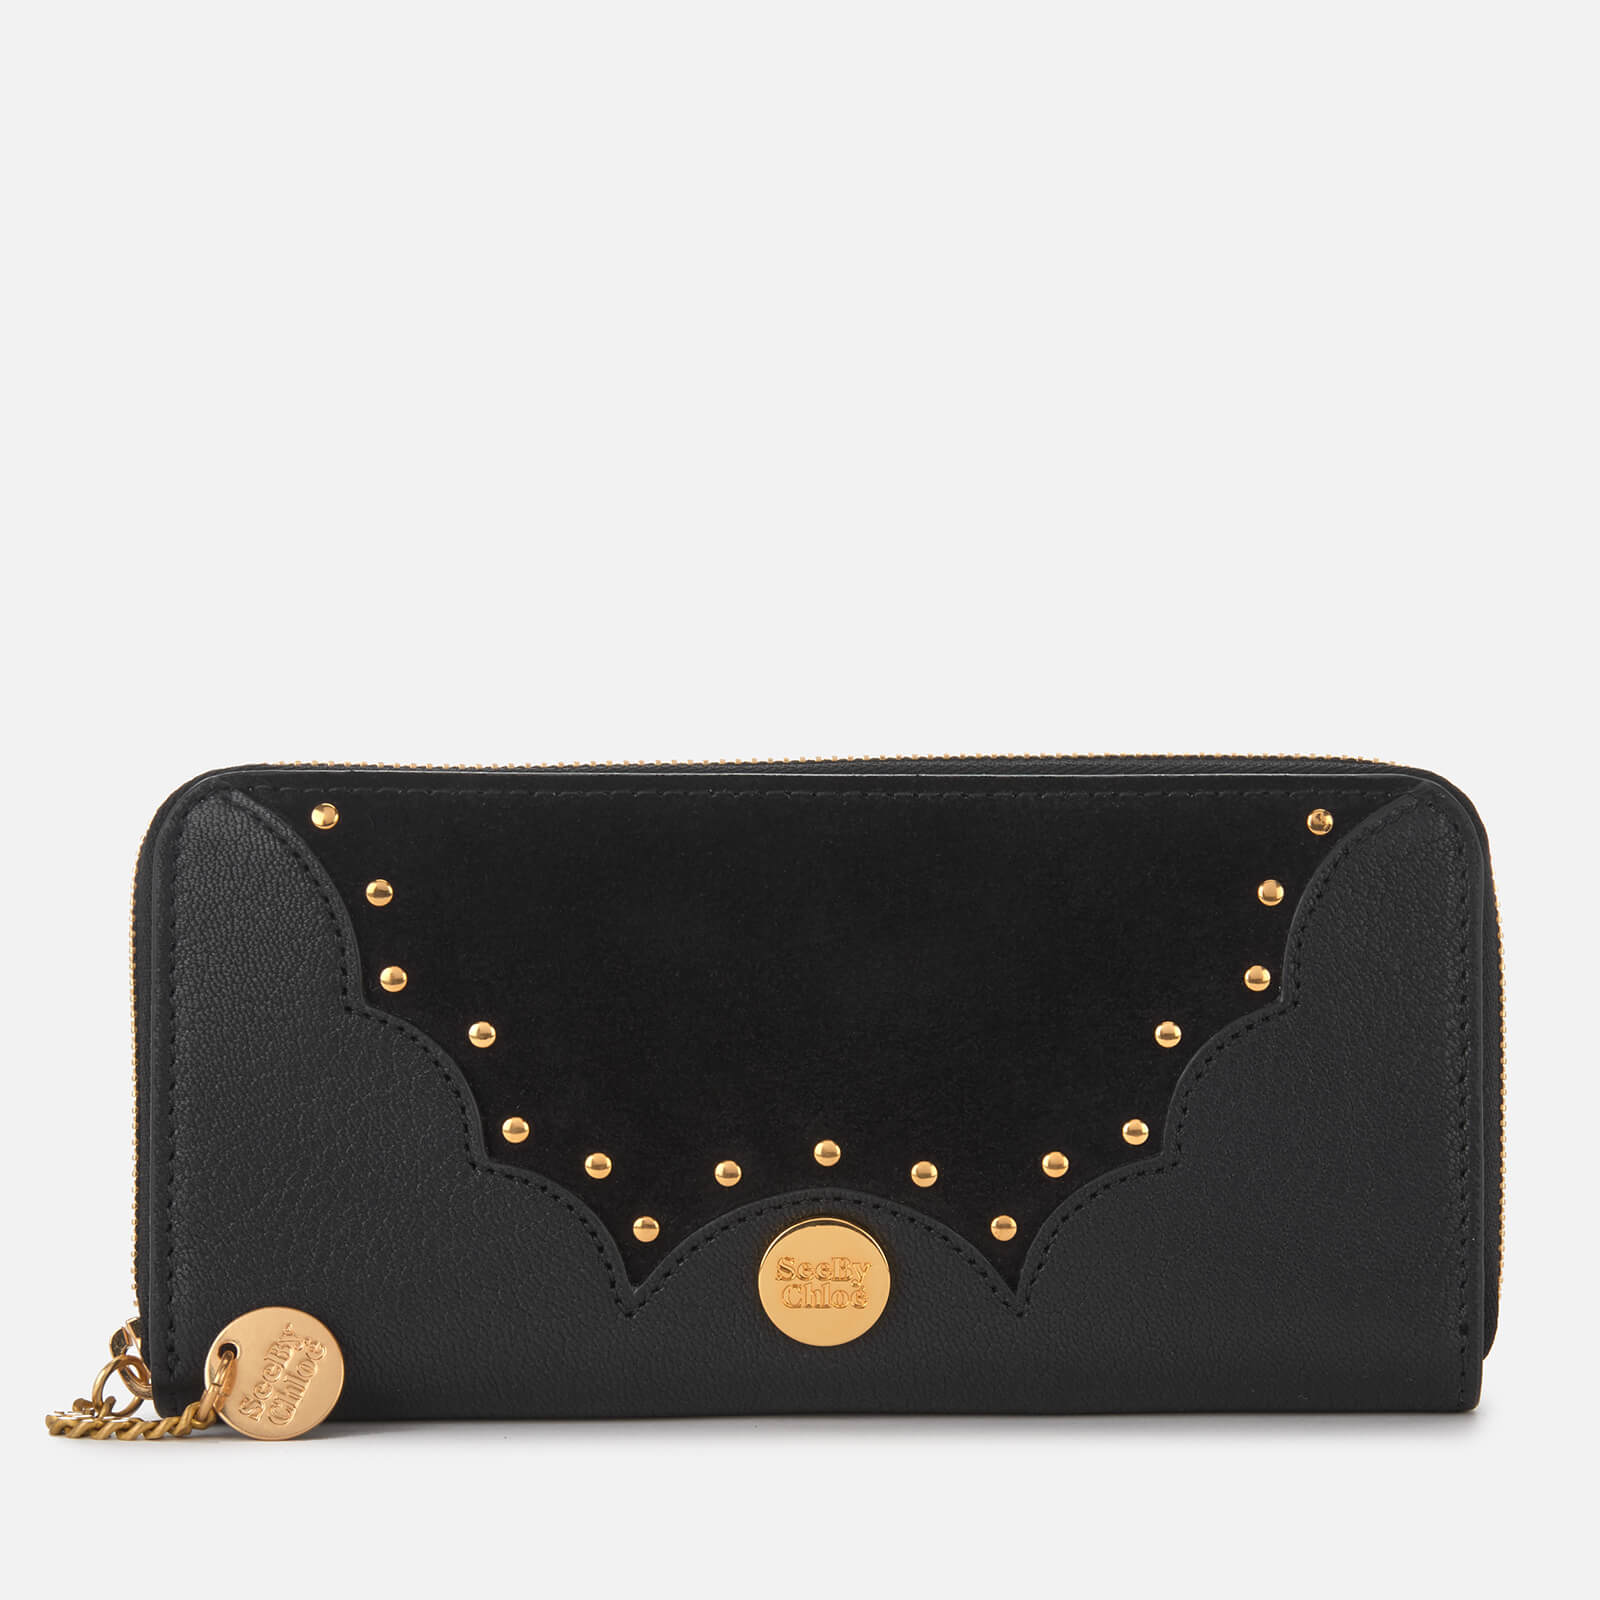 00fd06bc See By Chloé Women's Continental Wallet - Black